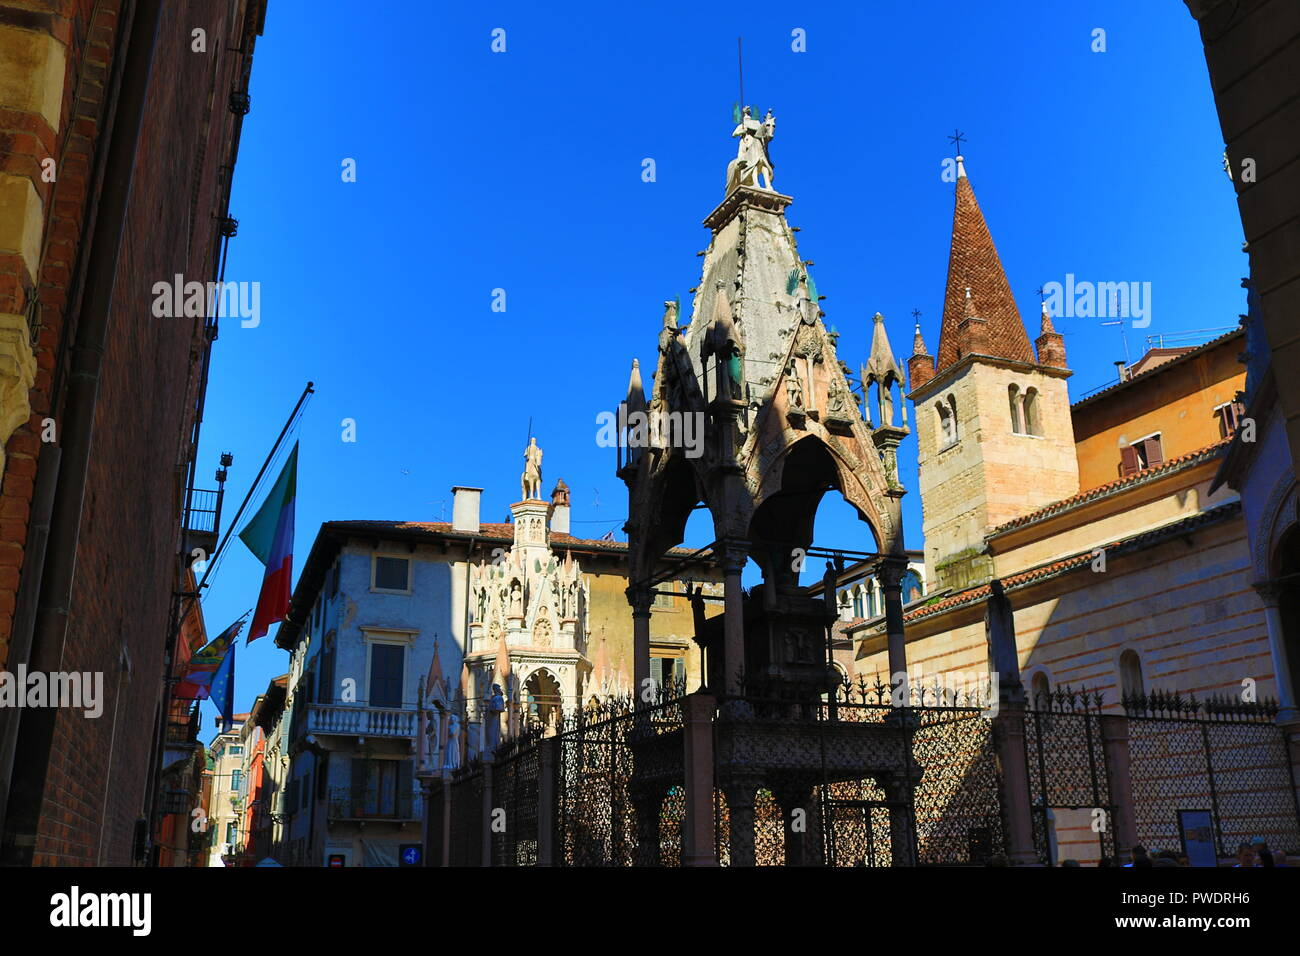 Arche scaligere-Elaborate raised tombs for the Scaligeri family, 14th-century rulers shown here on horseback in Verona,Italy - Stock Image